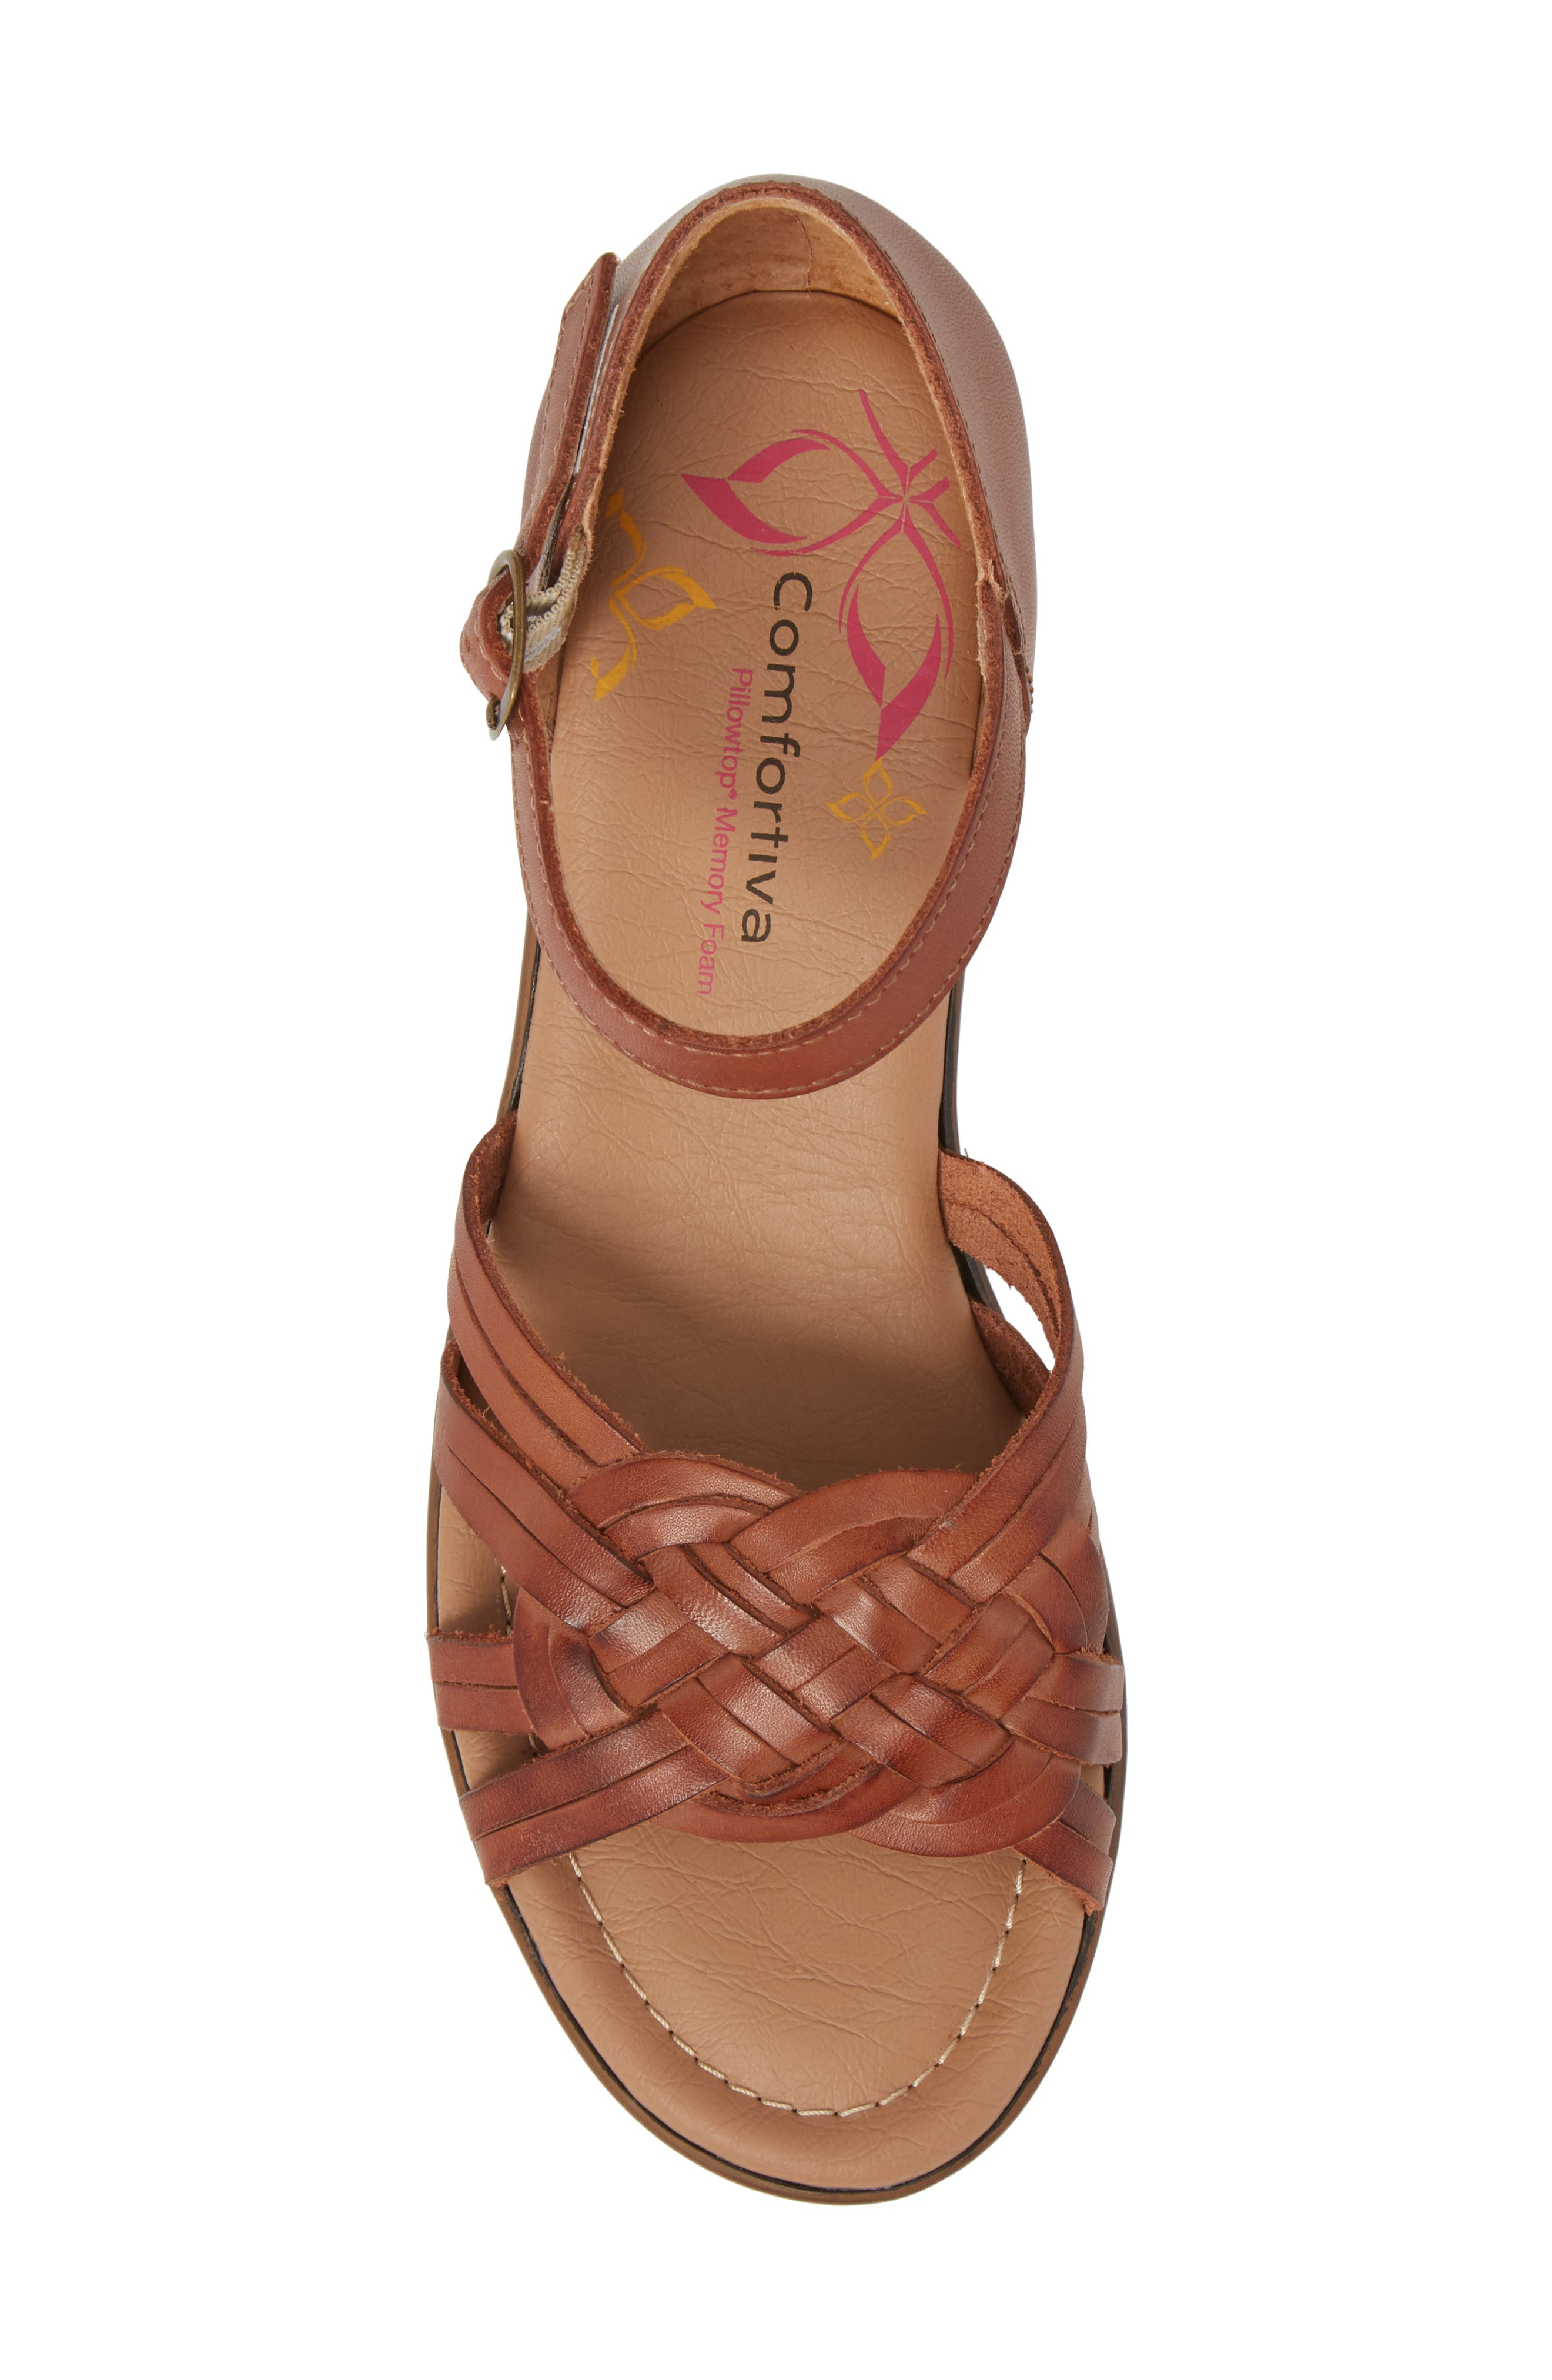 Fortune Sandal,                             Alternate thumbnail 5, color,                             Rust Leather